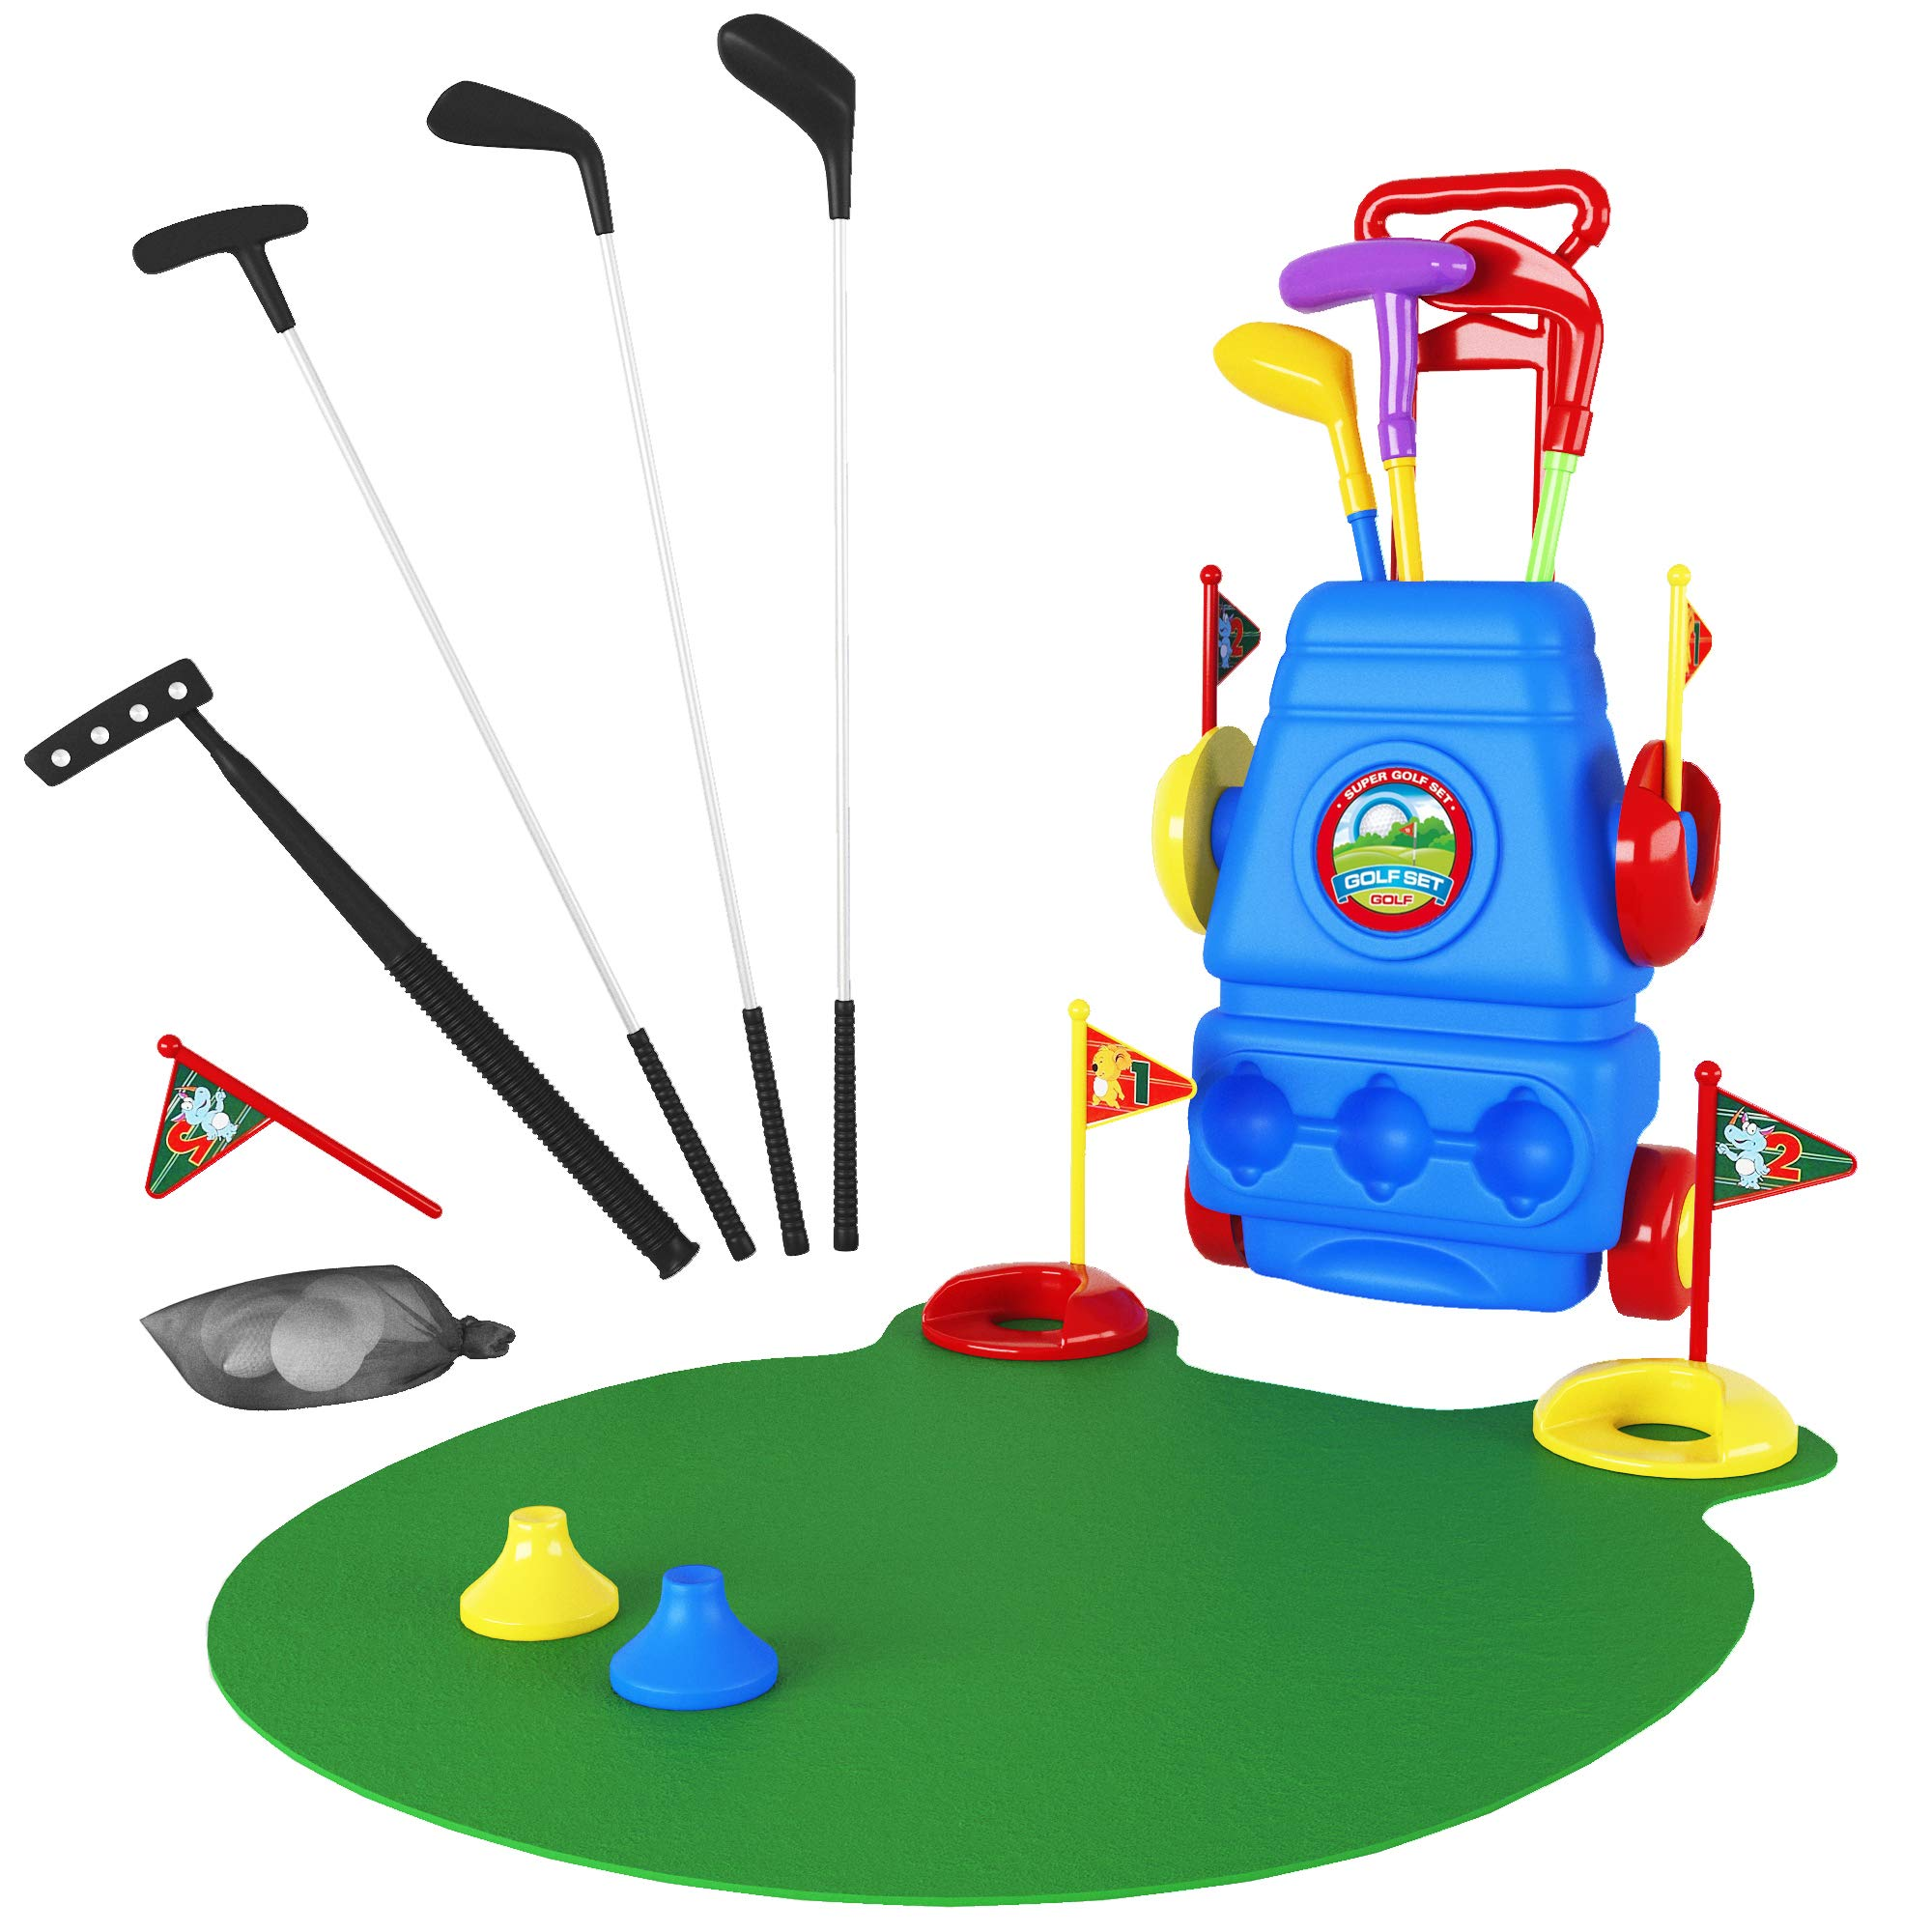 Toy Golf Clubs Set Bundle with Mini Golf Putter and Green Mat, Kids Unbreakable Golf Clubs, Balls and More _ Toys for 3 Year Old Boys and Girls, Outdoor and Learning Toys _ for Toddlers and Juniors by CarsonChase